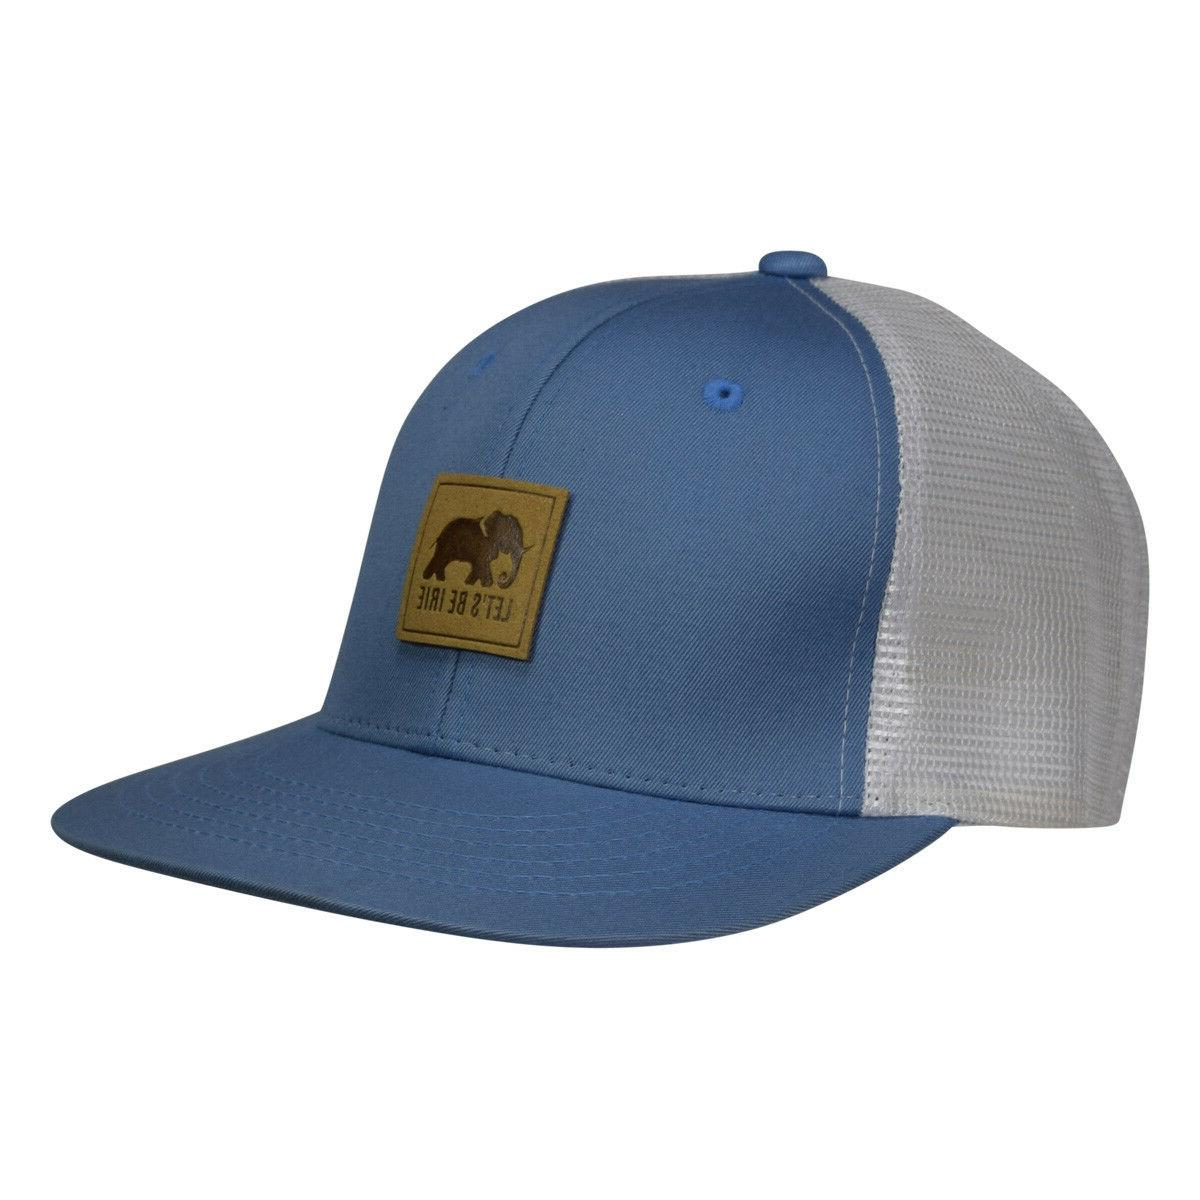 LET'S BE IRIE Elephant Trucker Hat - Blue and White Snapback